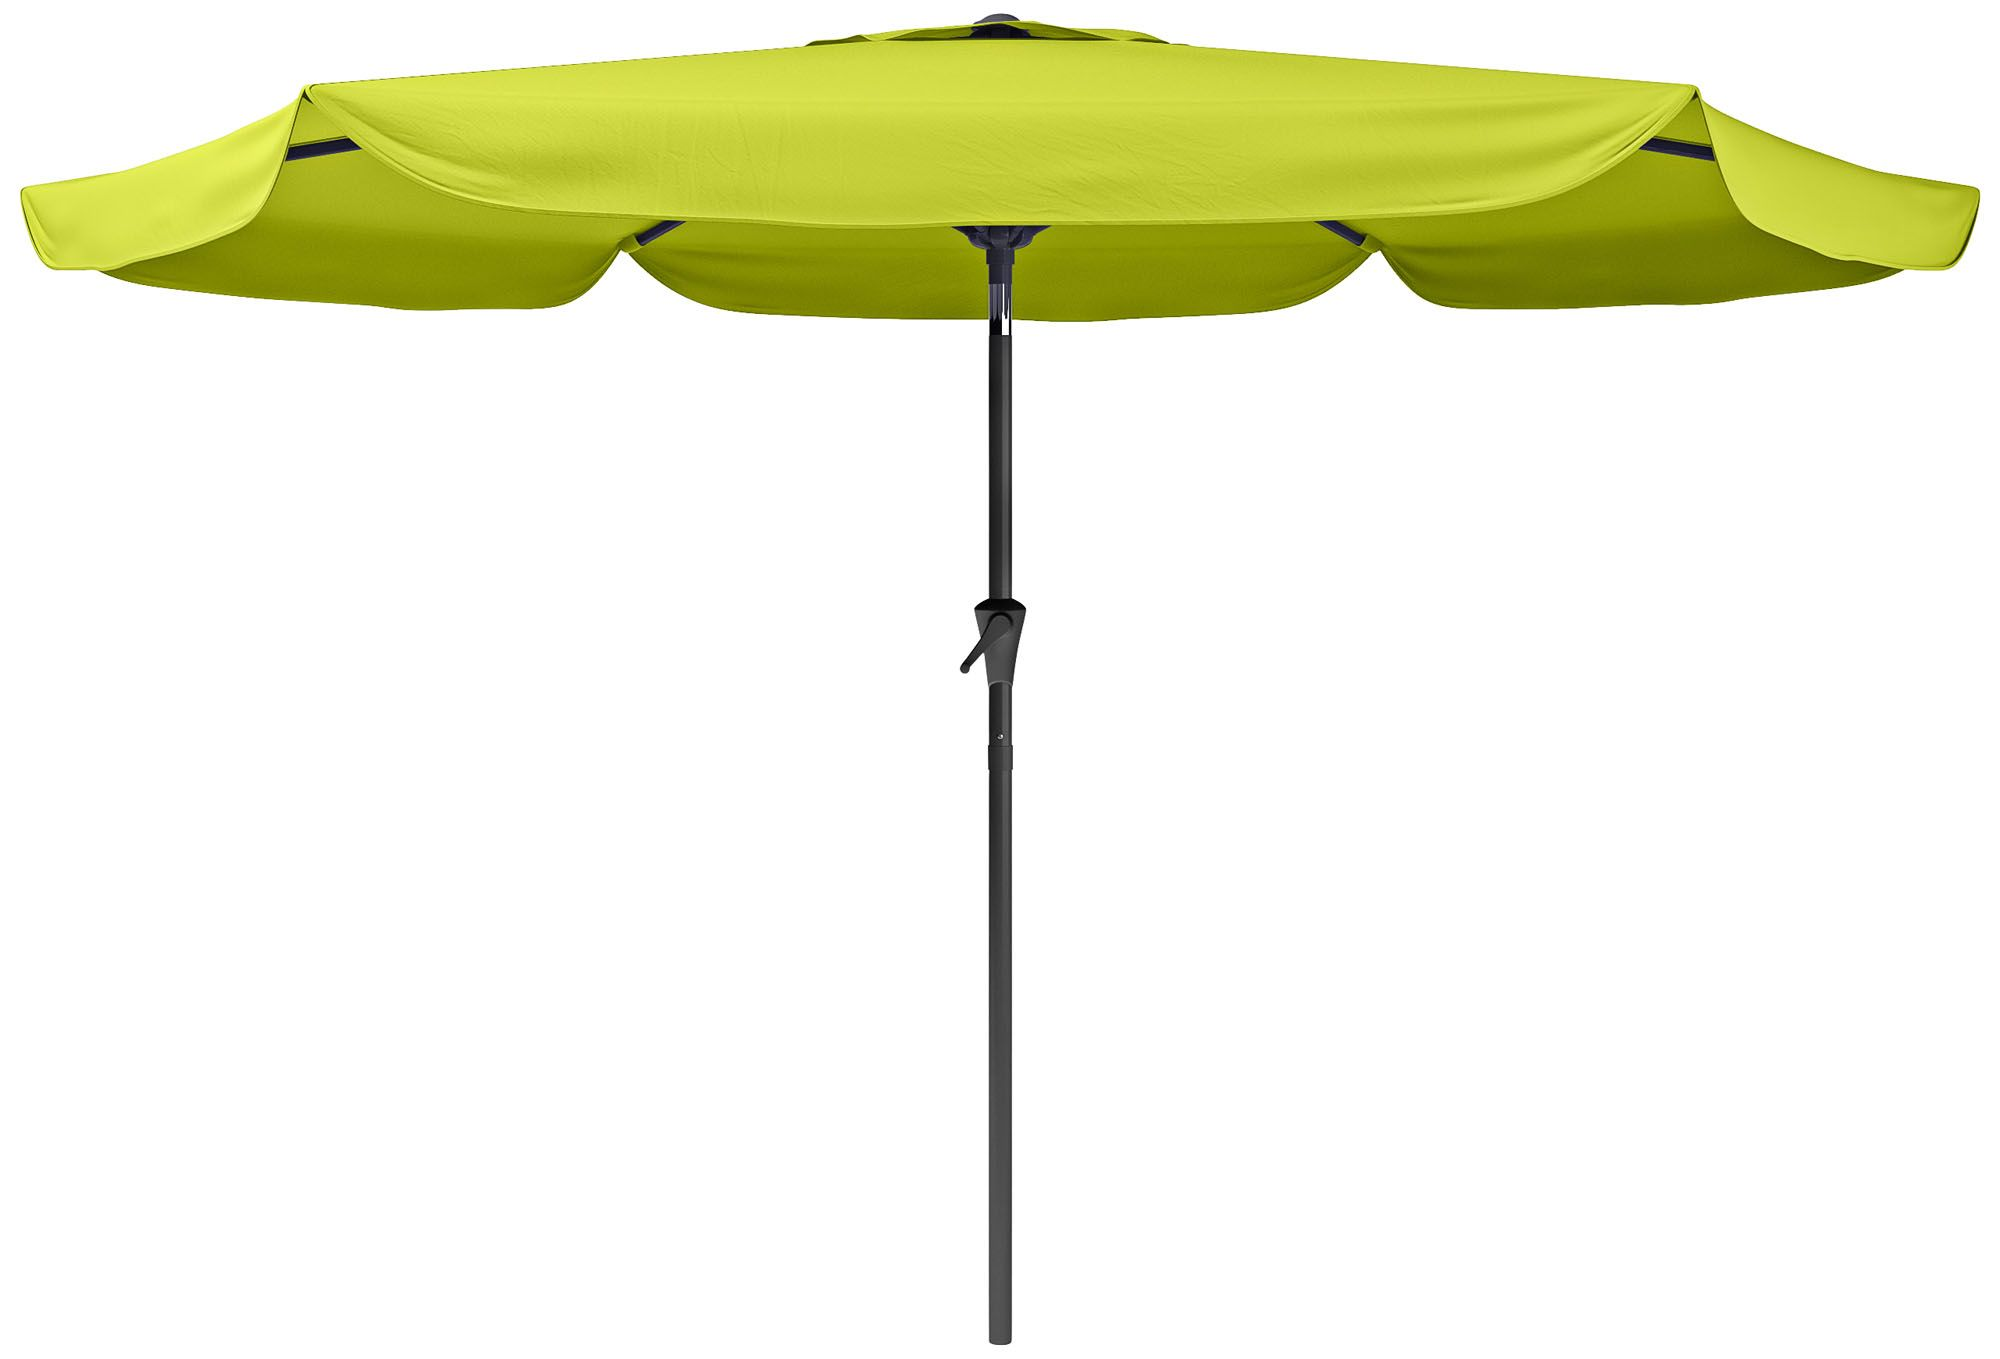 Hoba 9 3/4 Foot Lime Green Fabric Tilting Patio